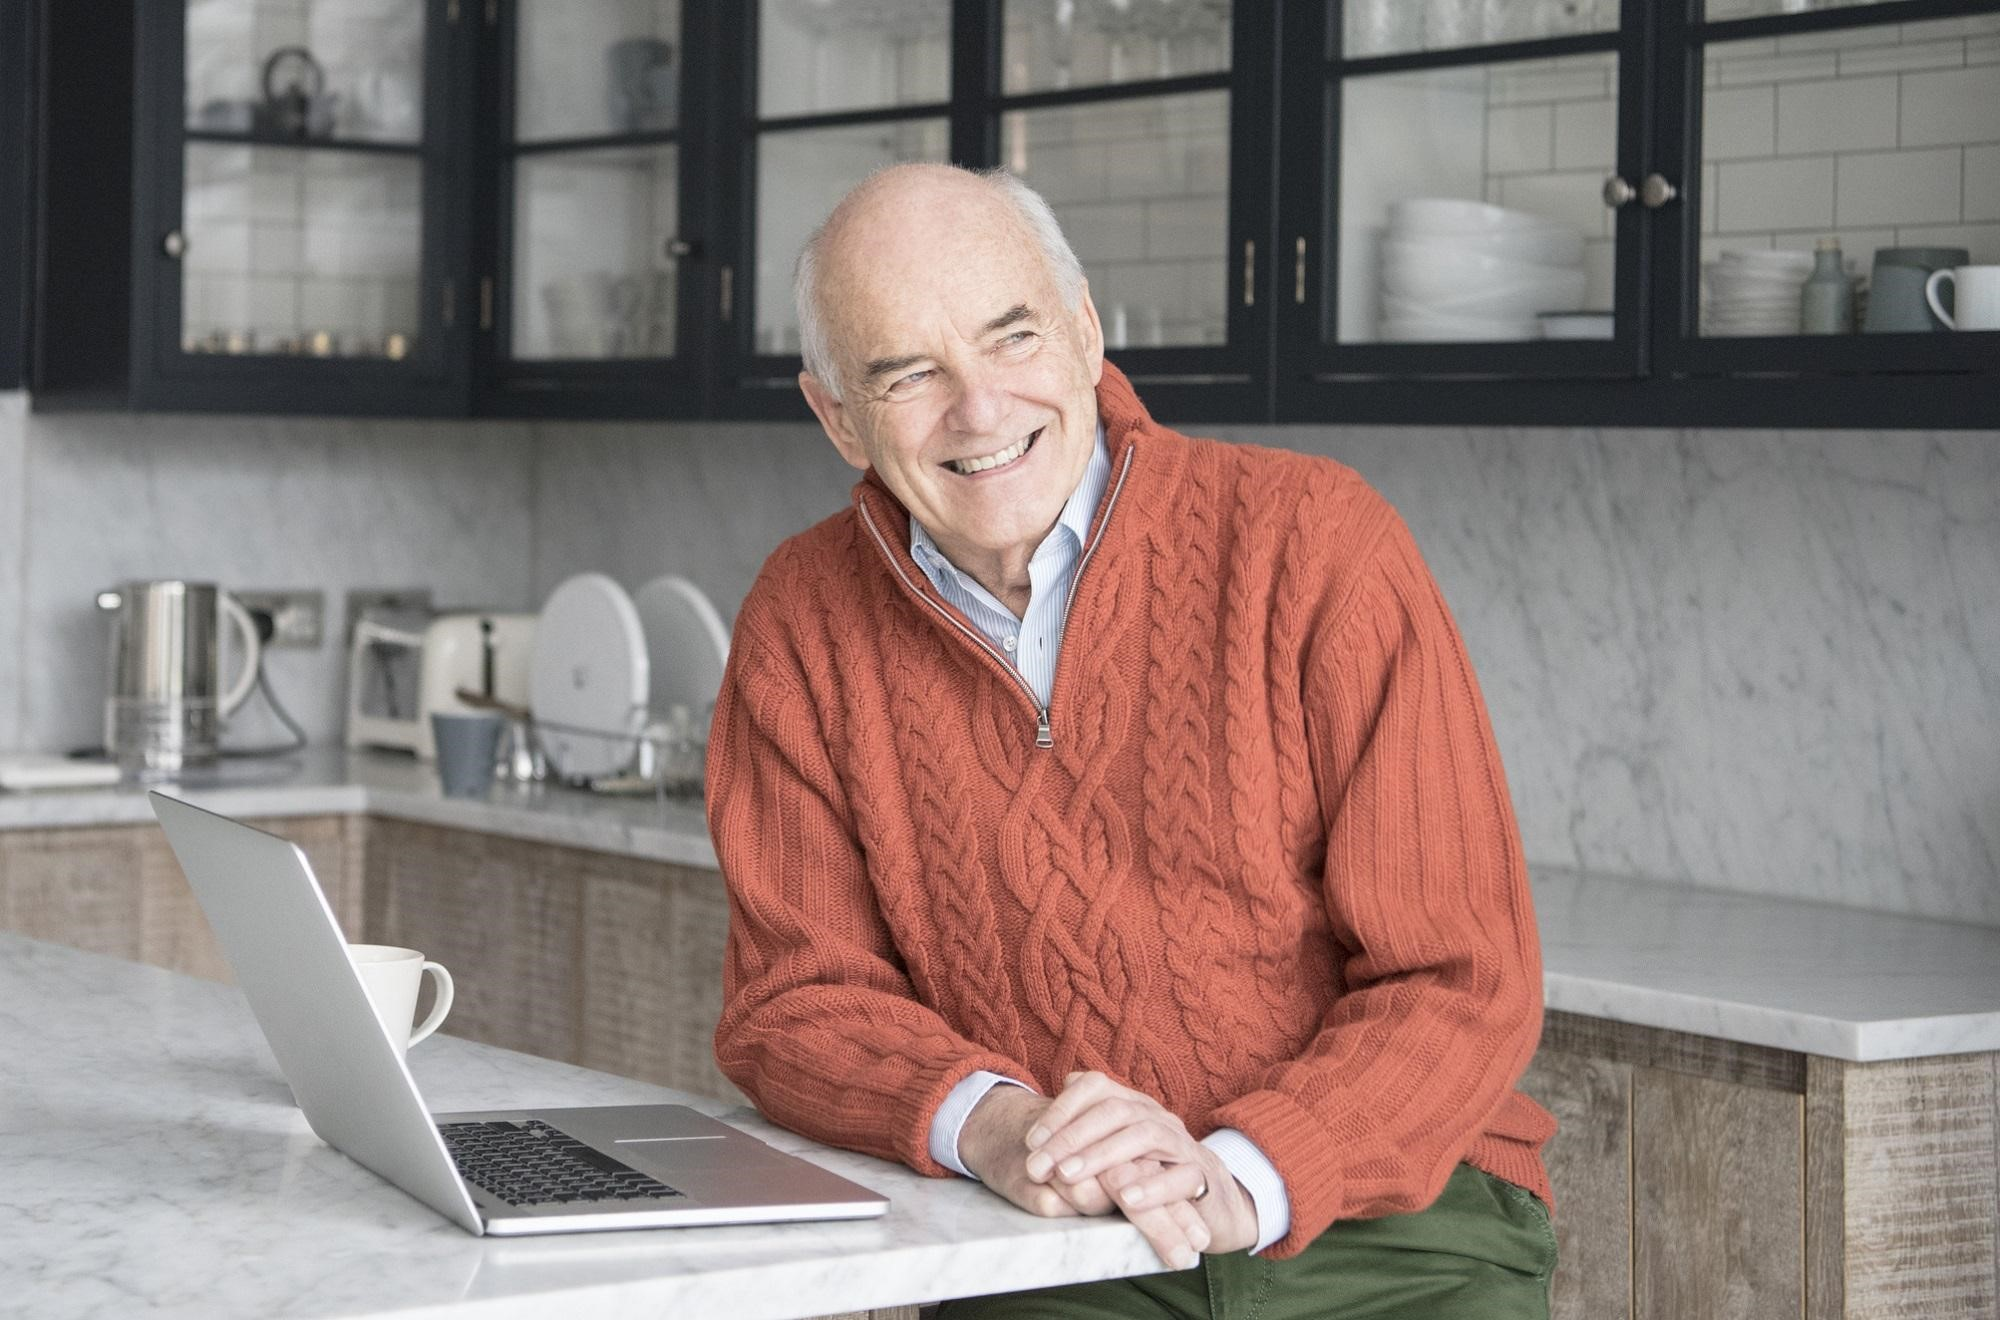 An older man wearing a sweater in the kitchen